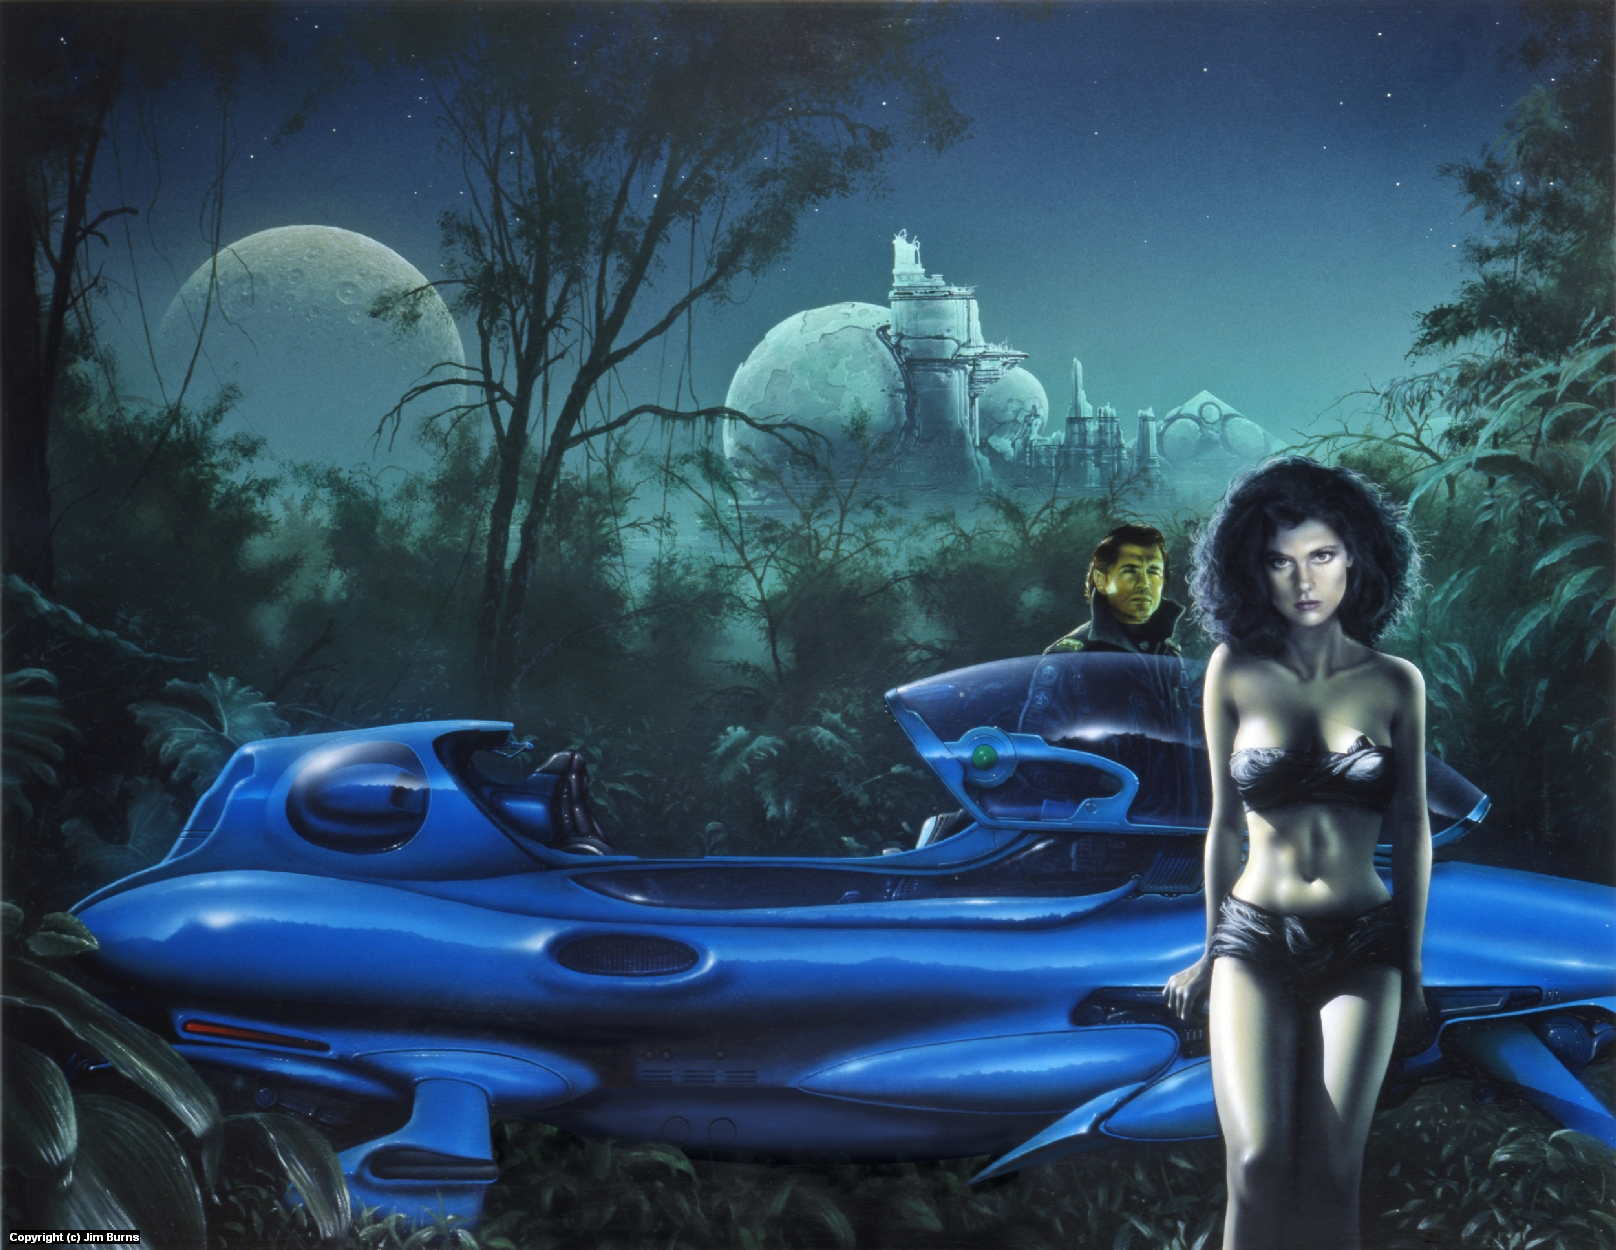 'The Lovers' Artwork by Jim Burns